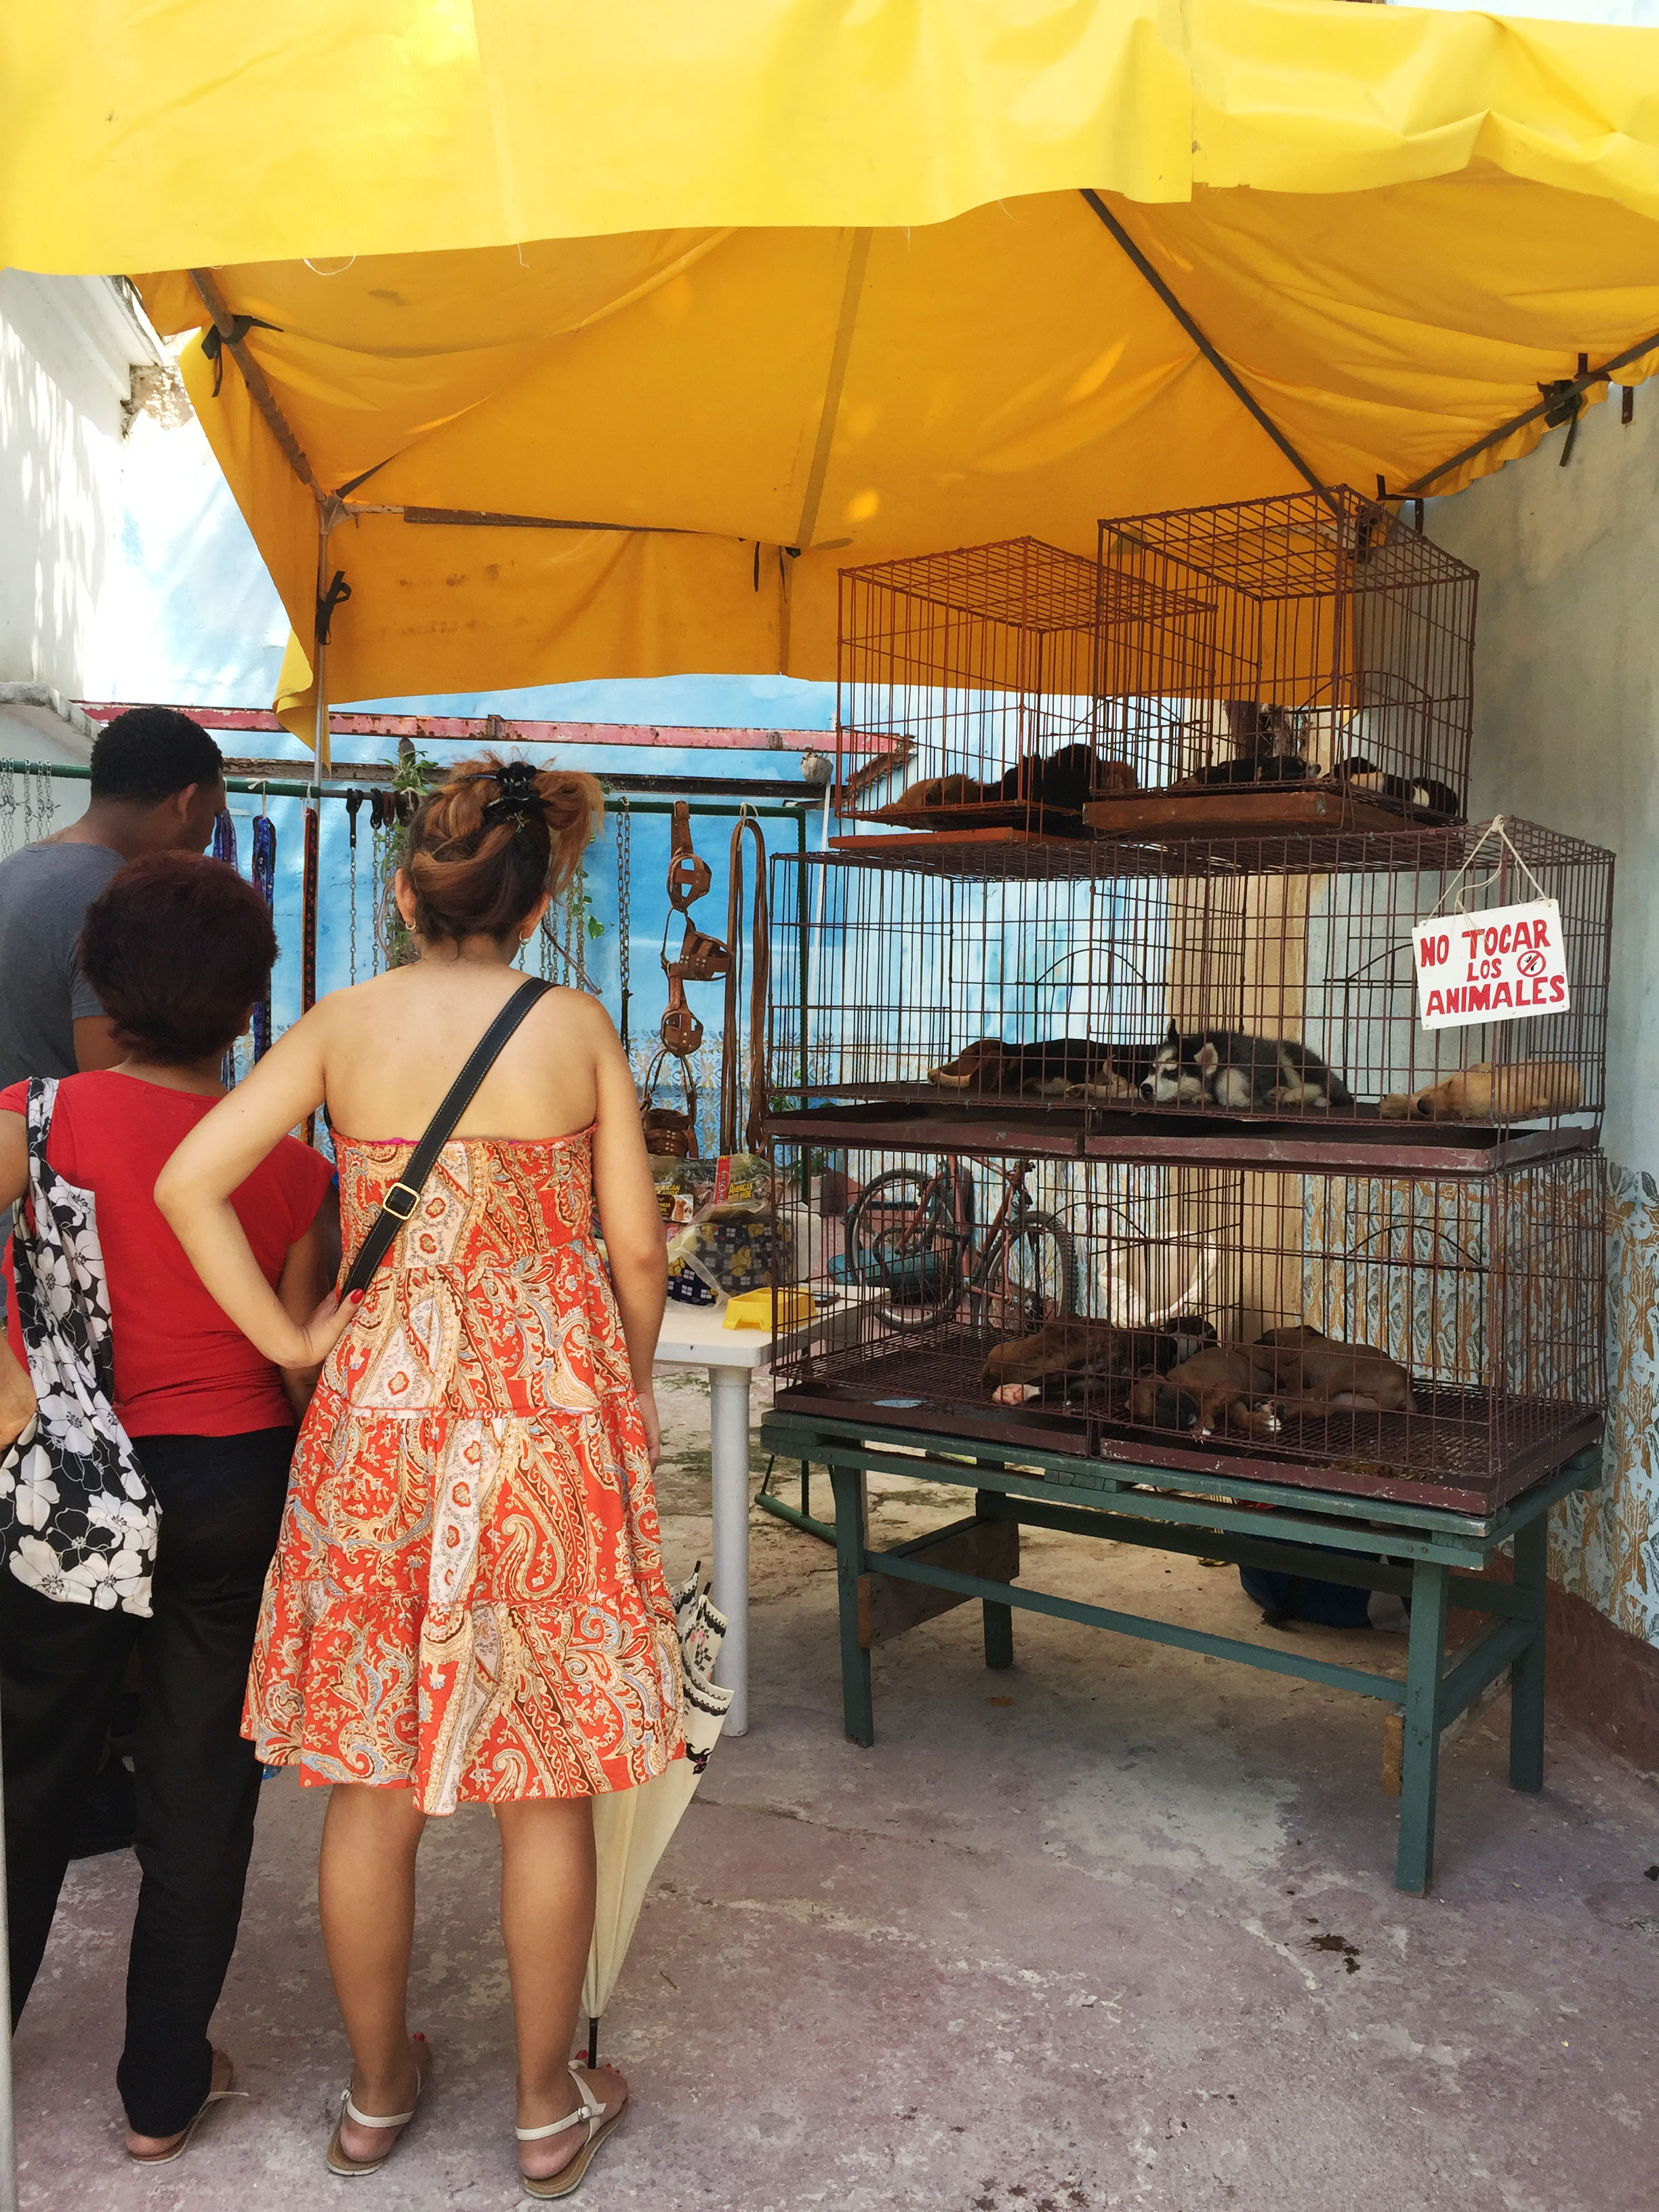 Puppies in cages awaiting new homes while others starve to death on the streets.